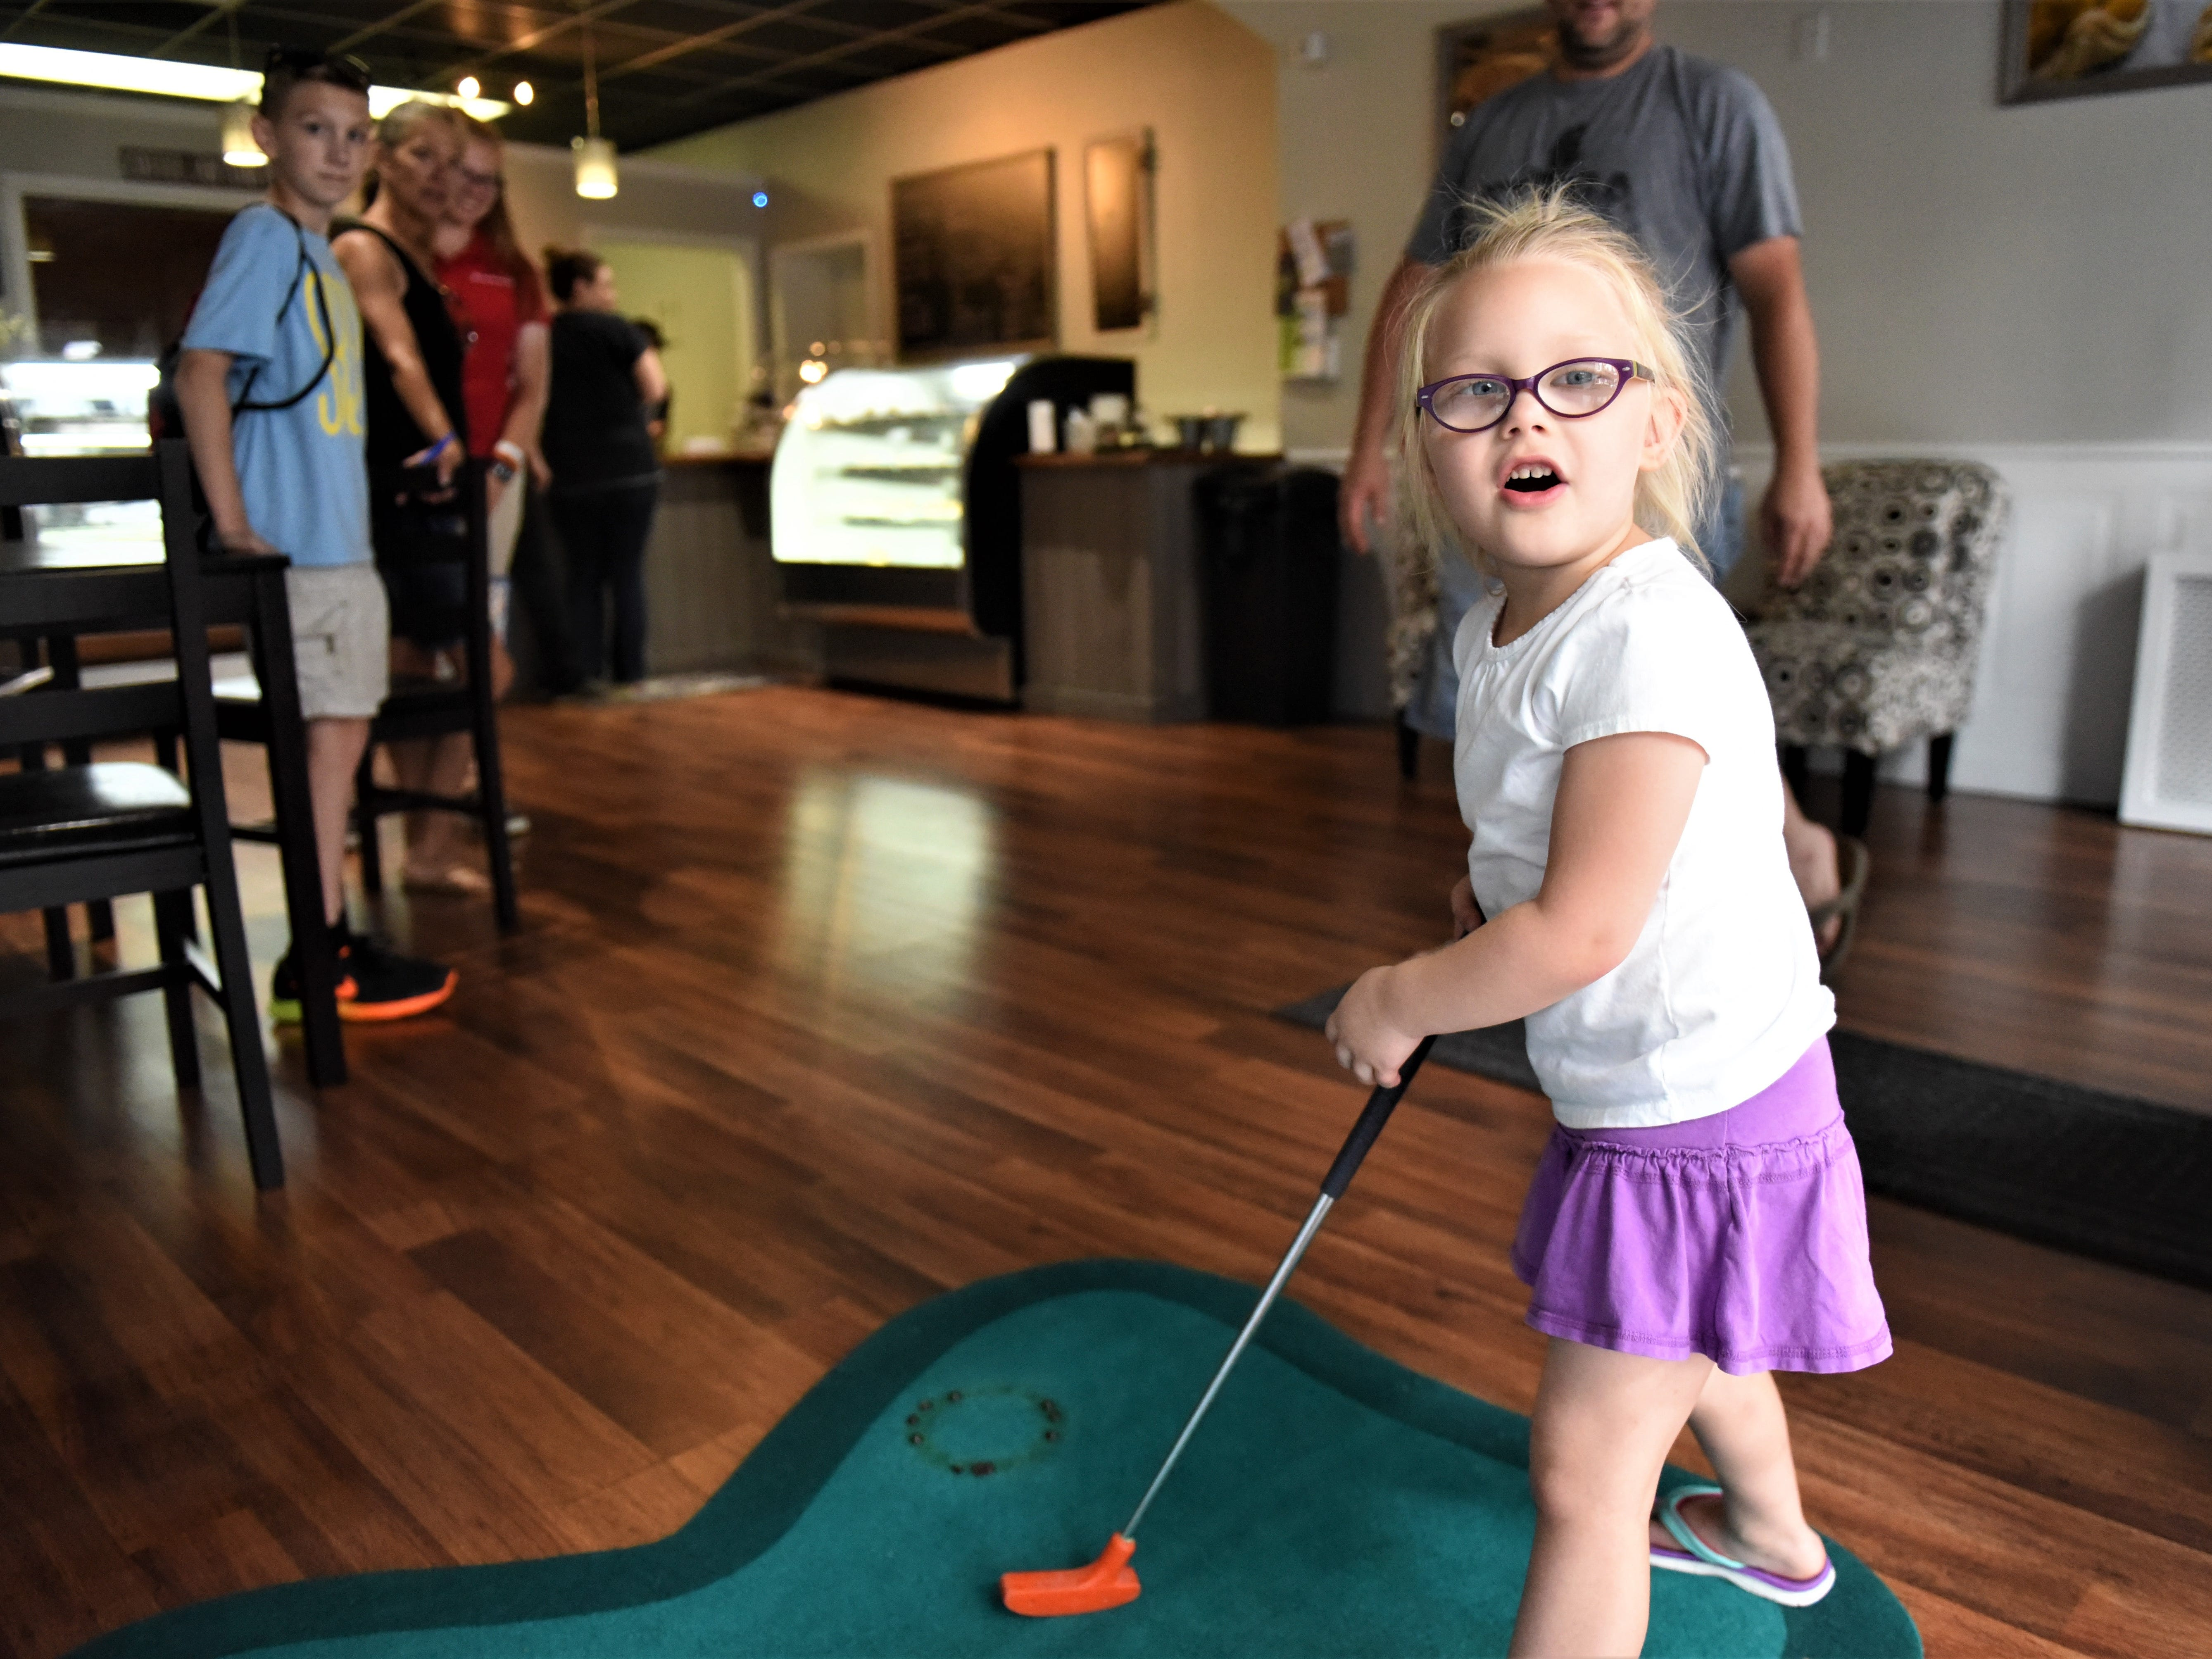 Alayna Groft, 4, of Hanover, playing mini golf on Aug. 11 at Crumb and Get It.